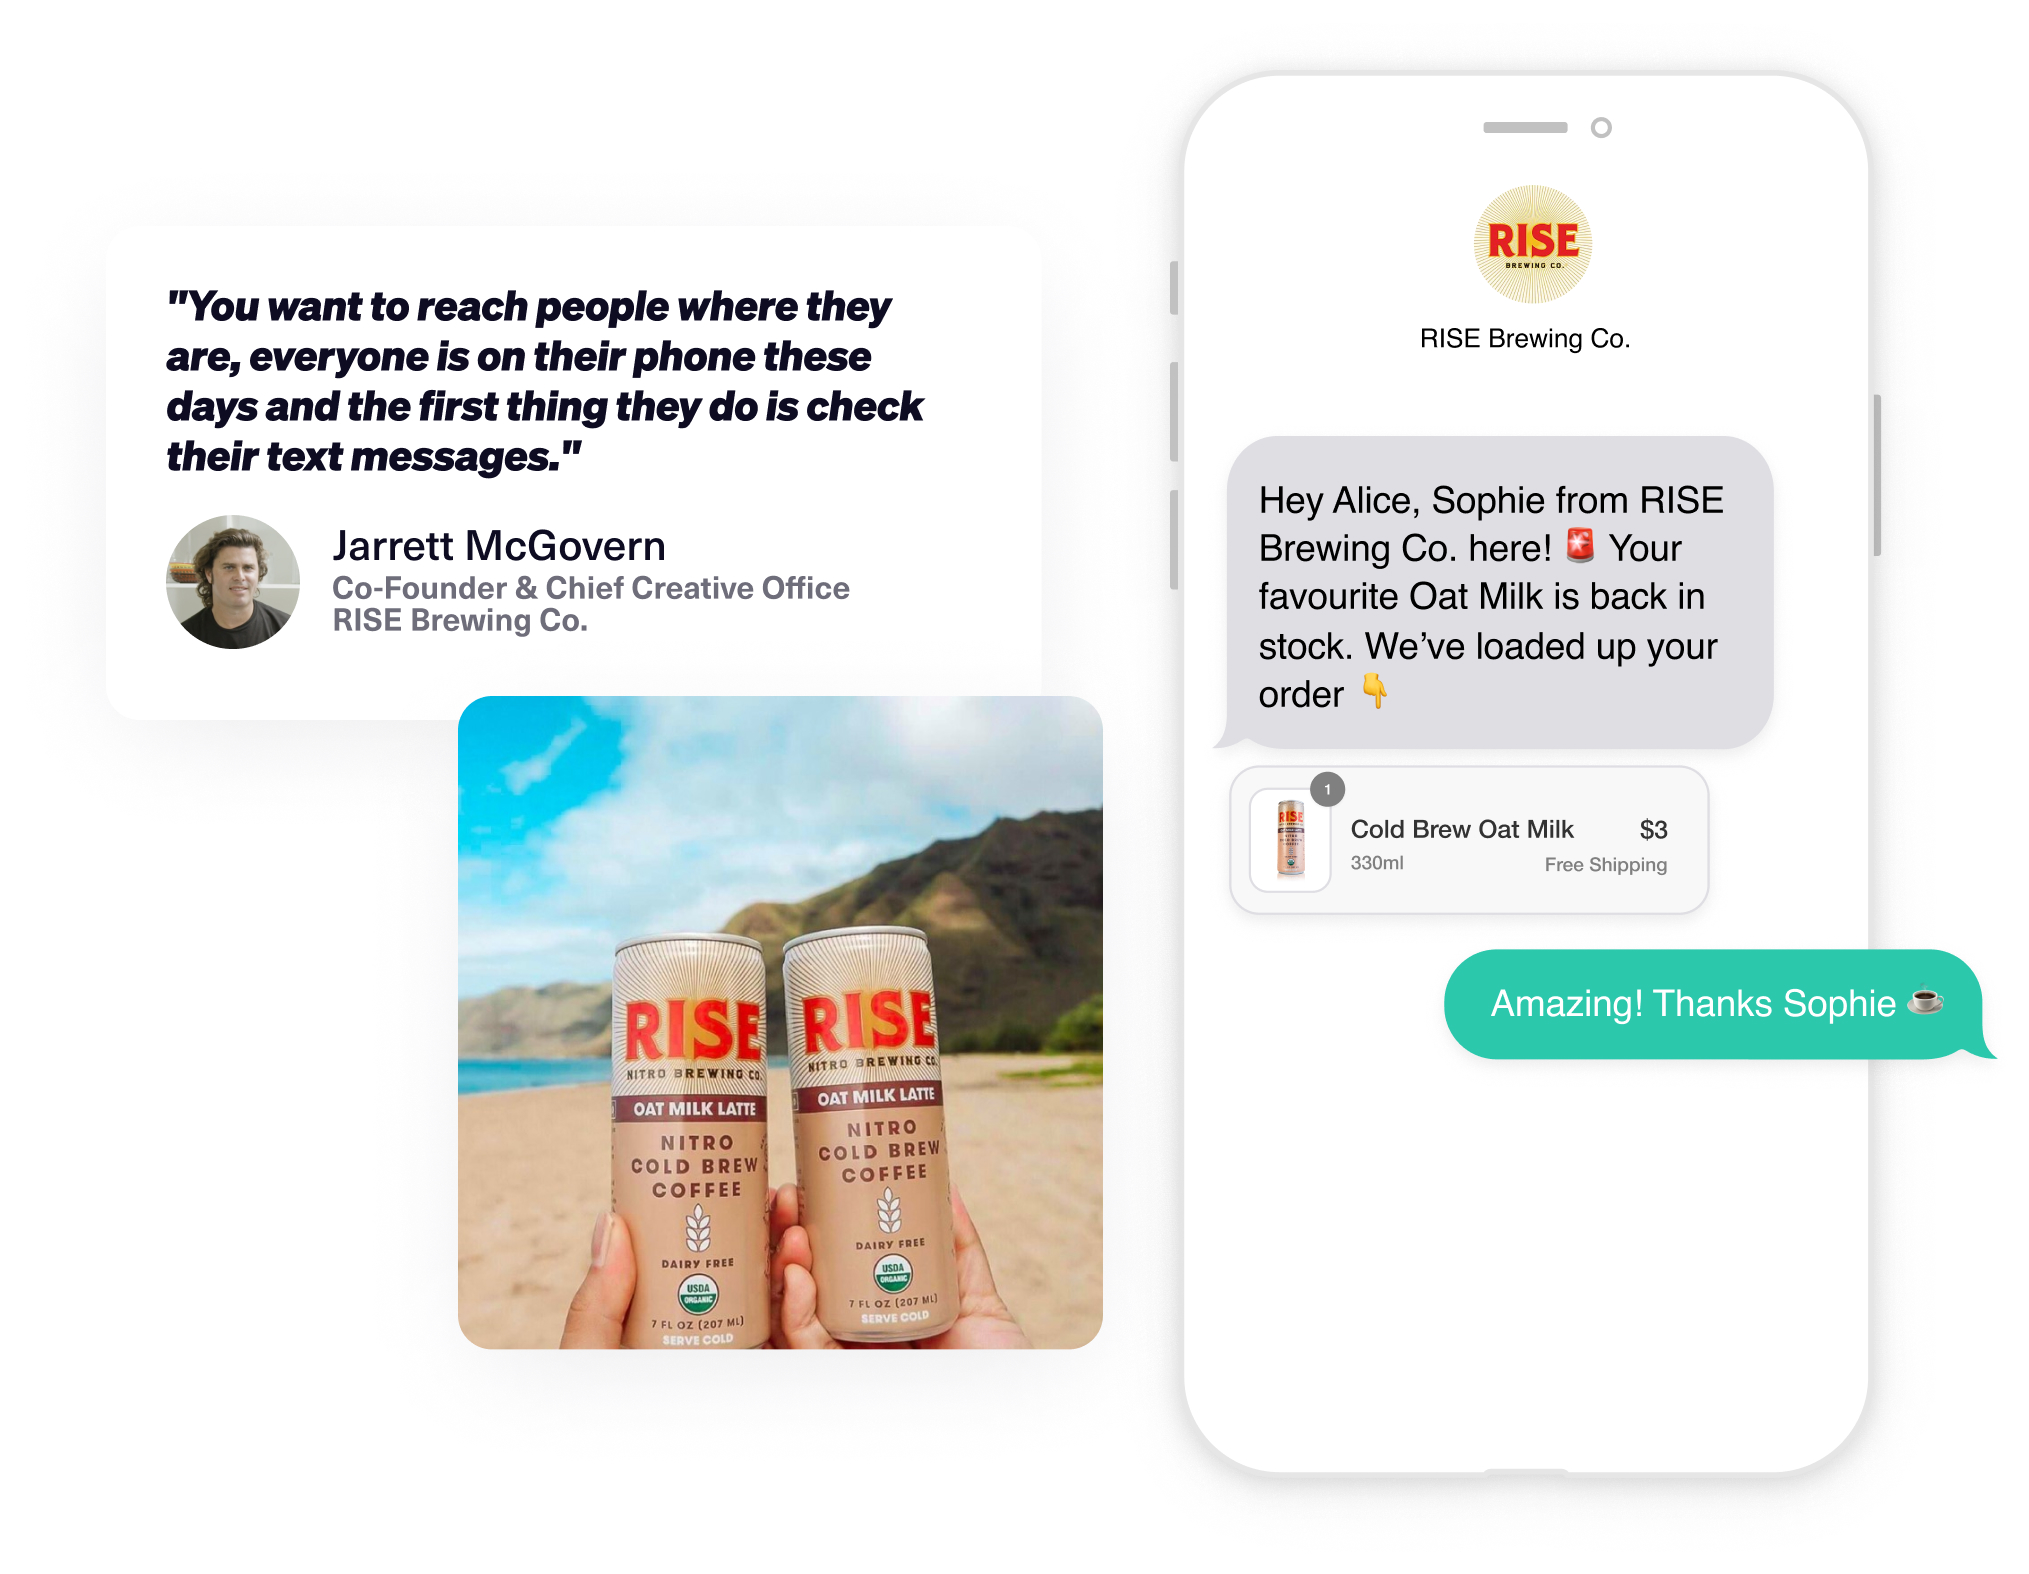 An SMS conversational chat between Rise Brewing Co and their customer Alice, who may click the recommended product and check-out in one tap.